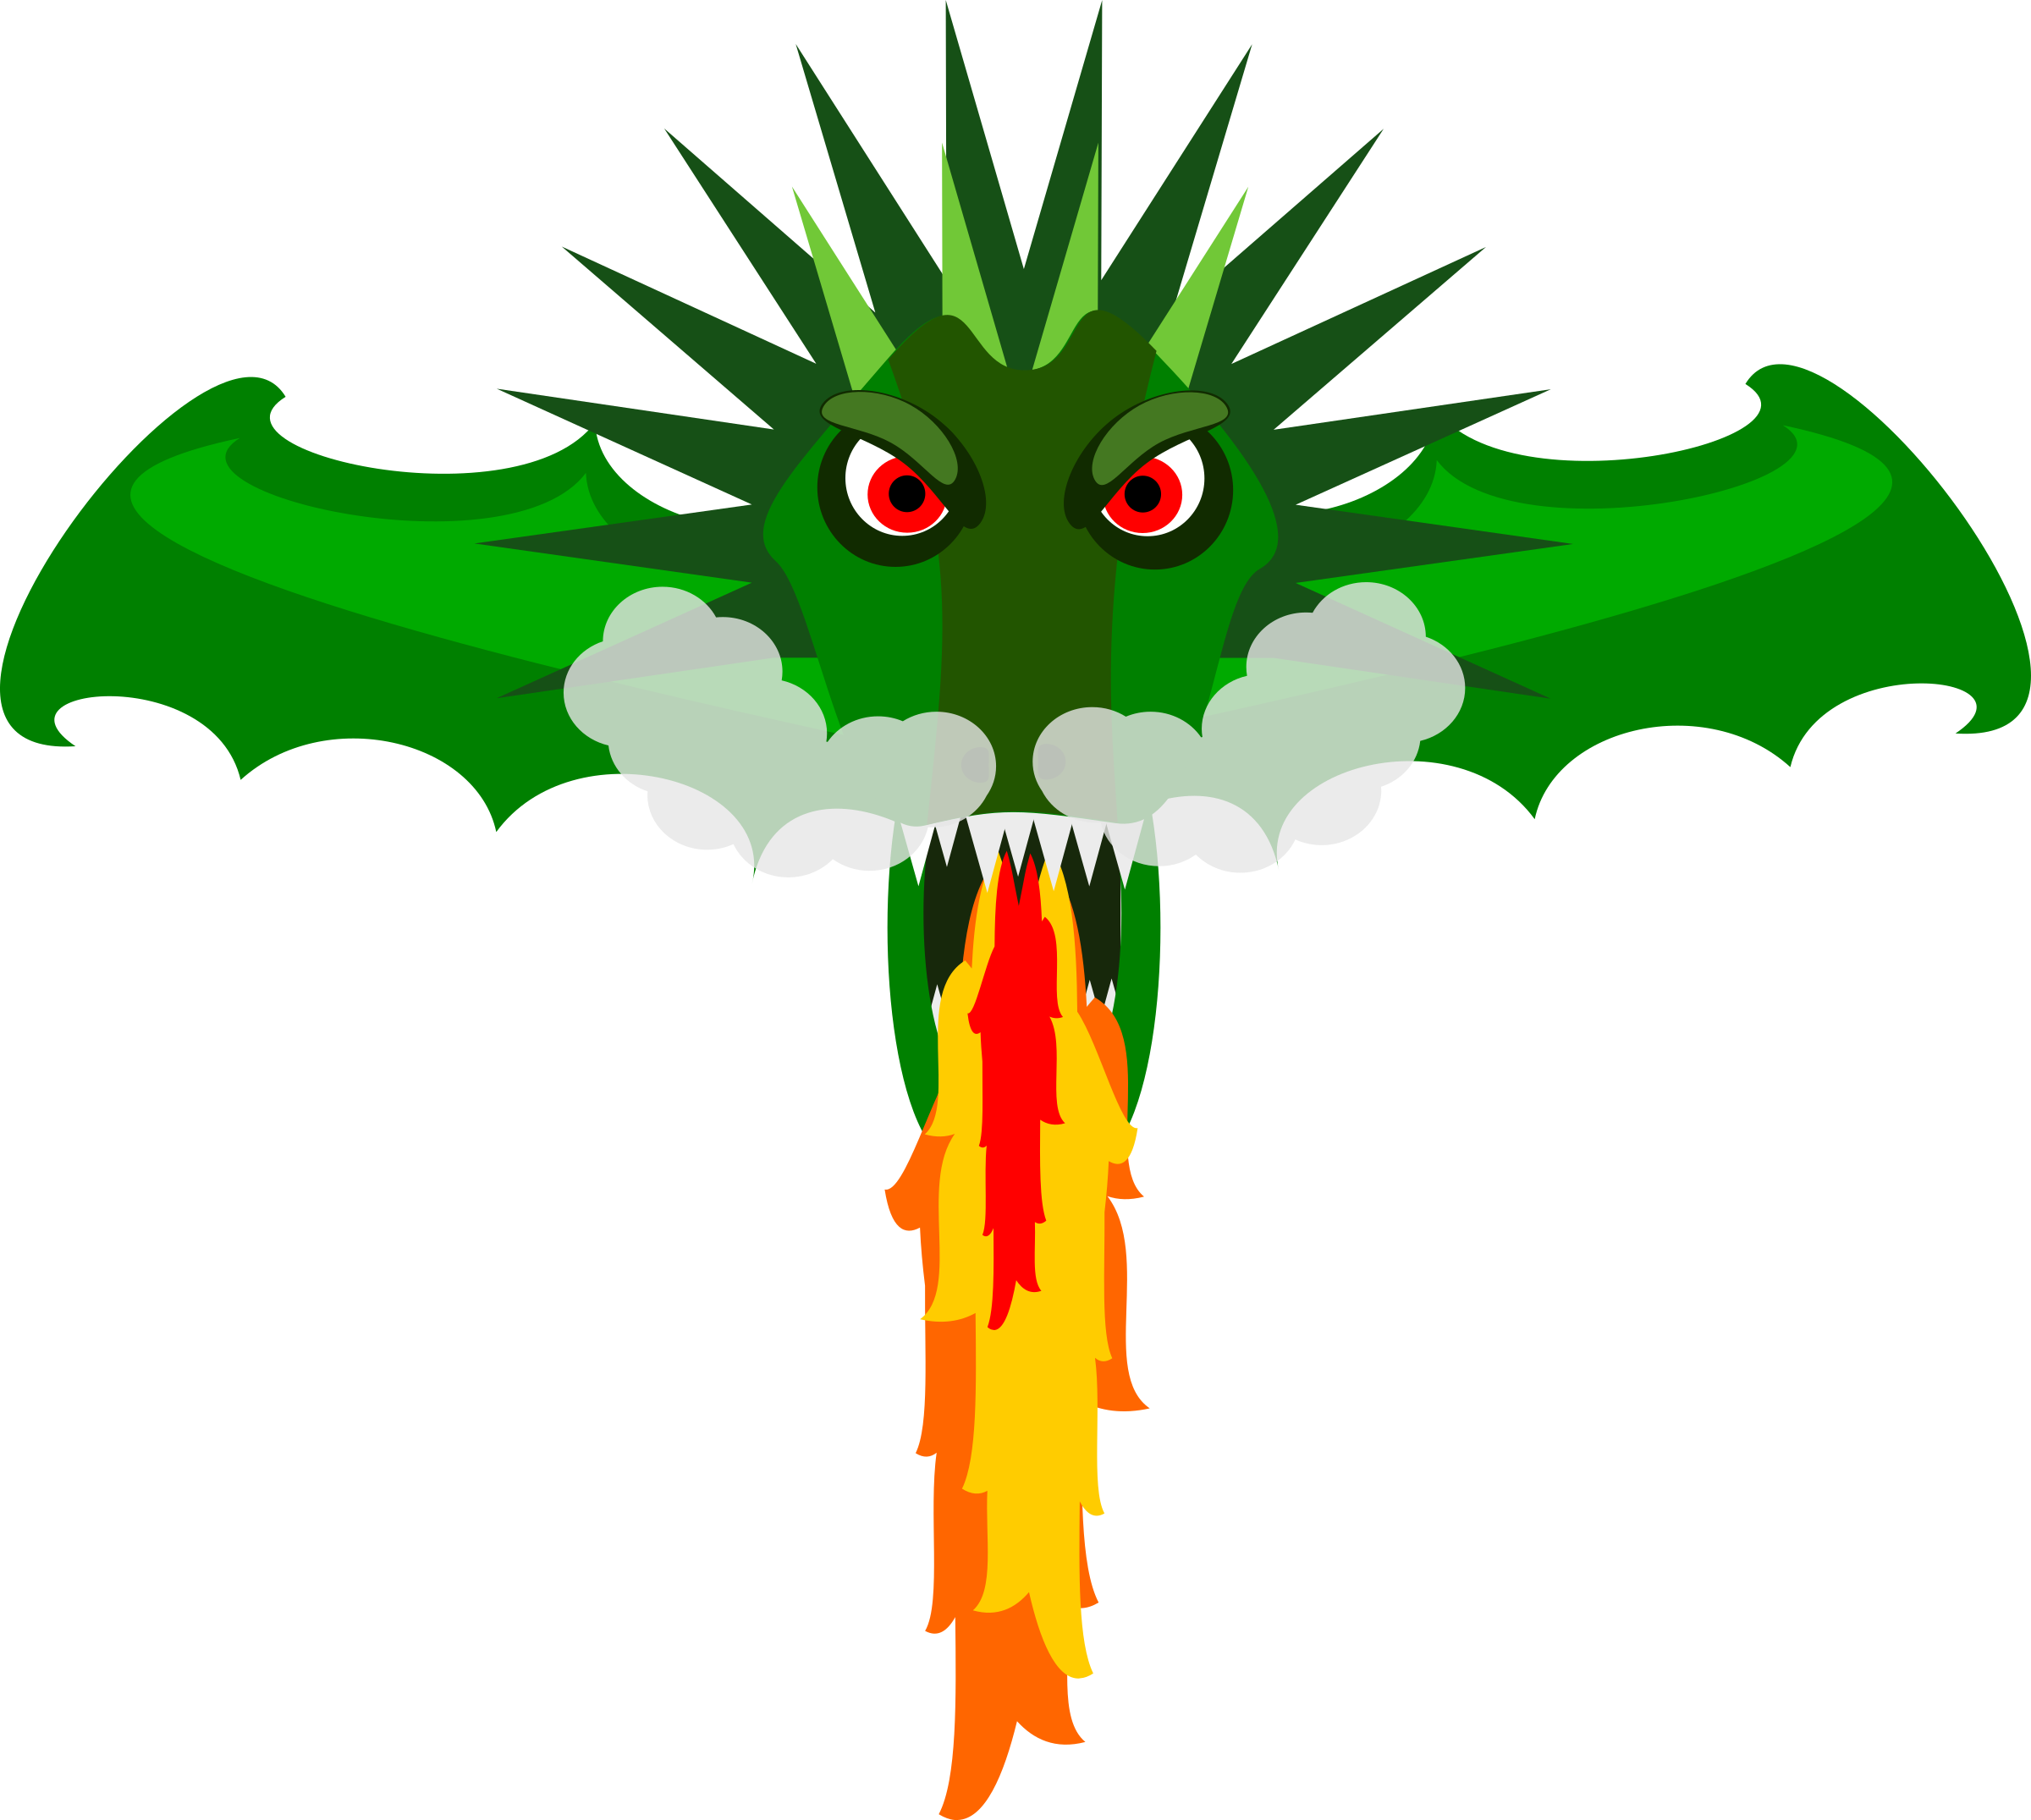 Moving clipart camera. Dragon head at getdrawings